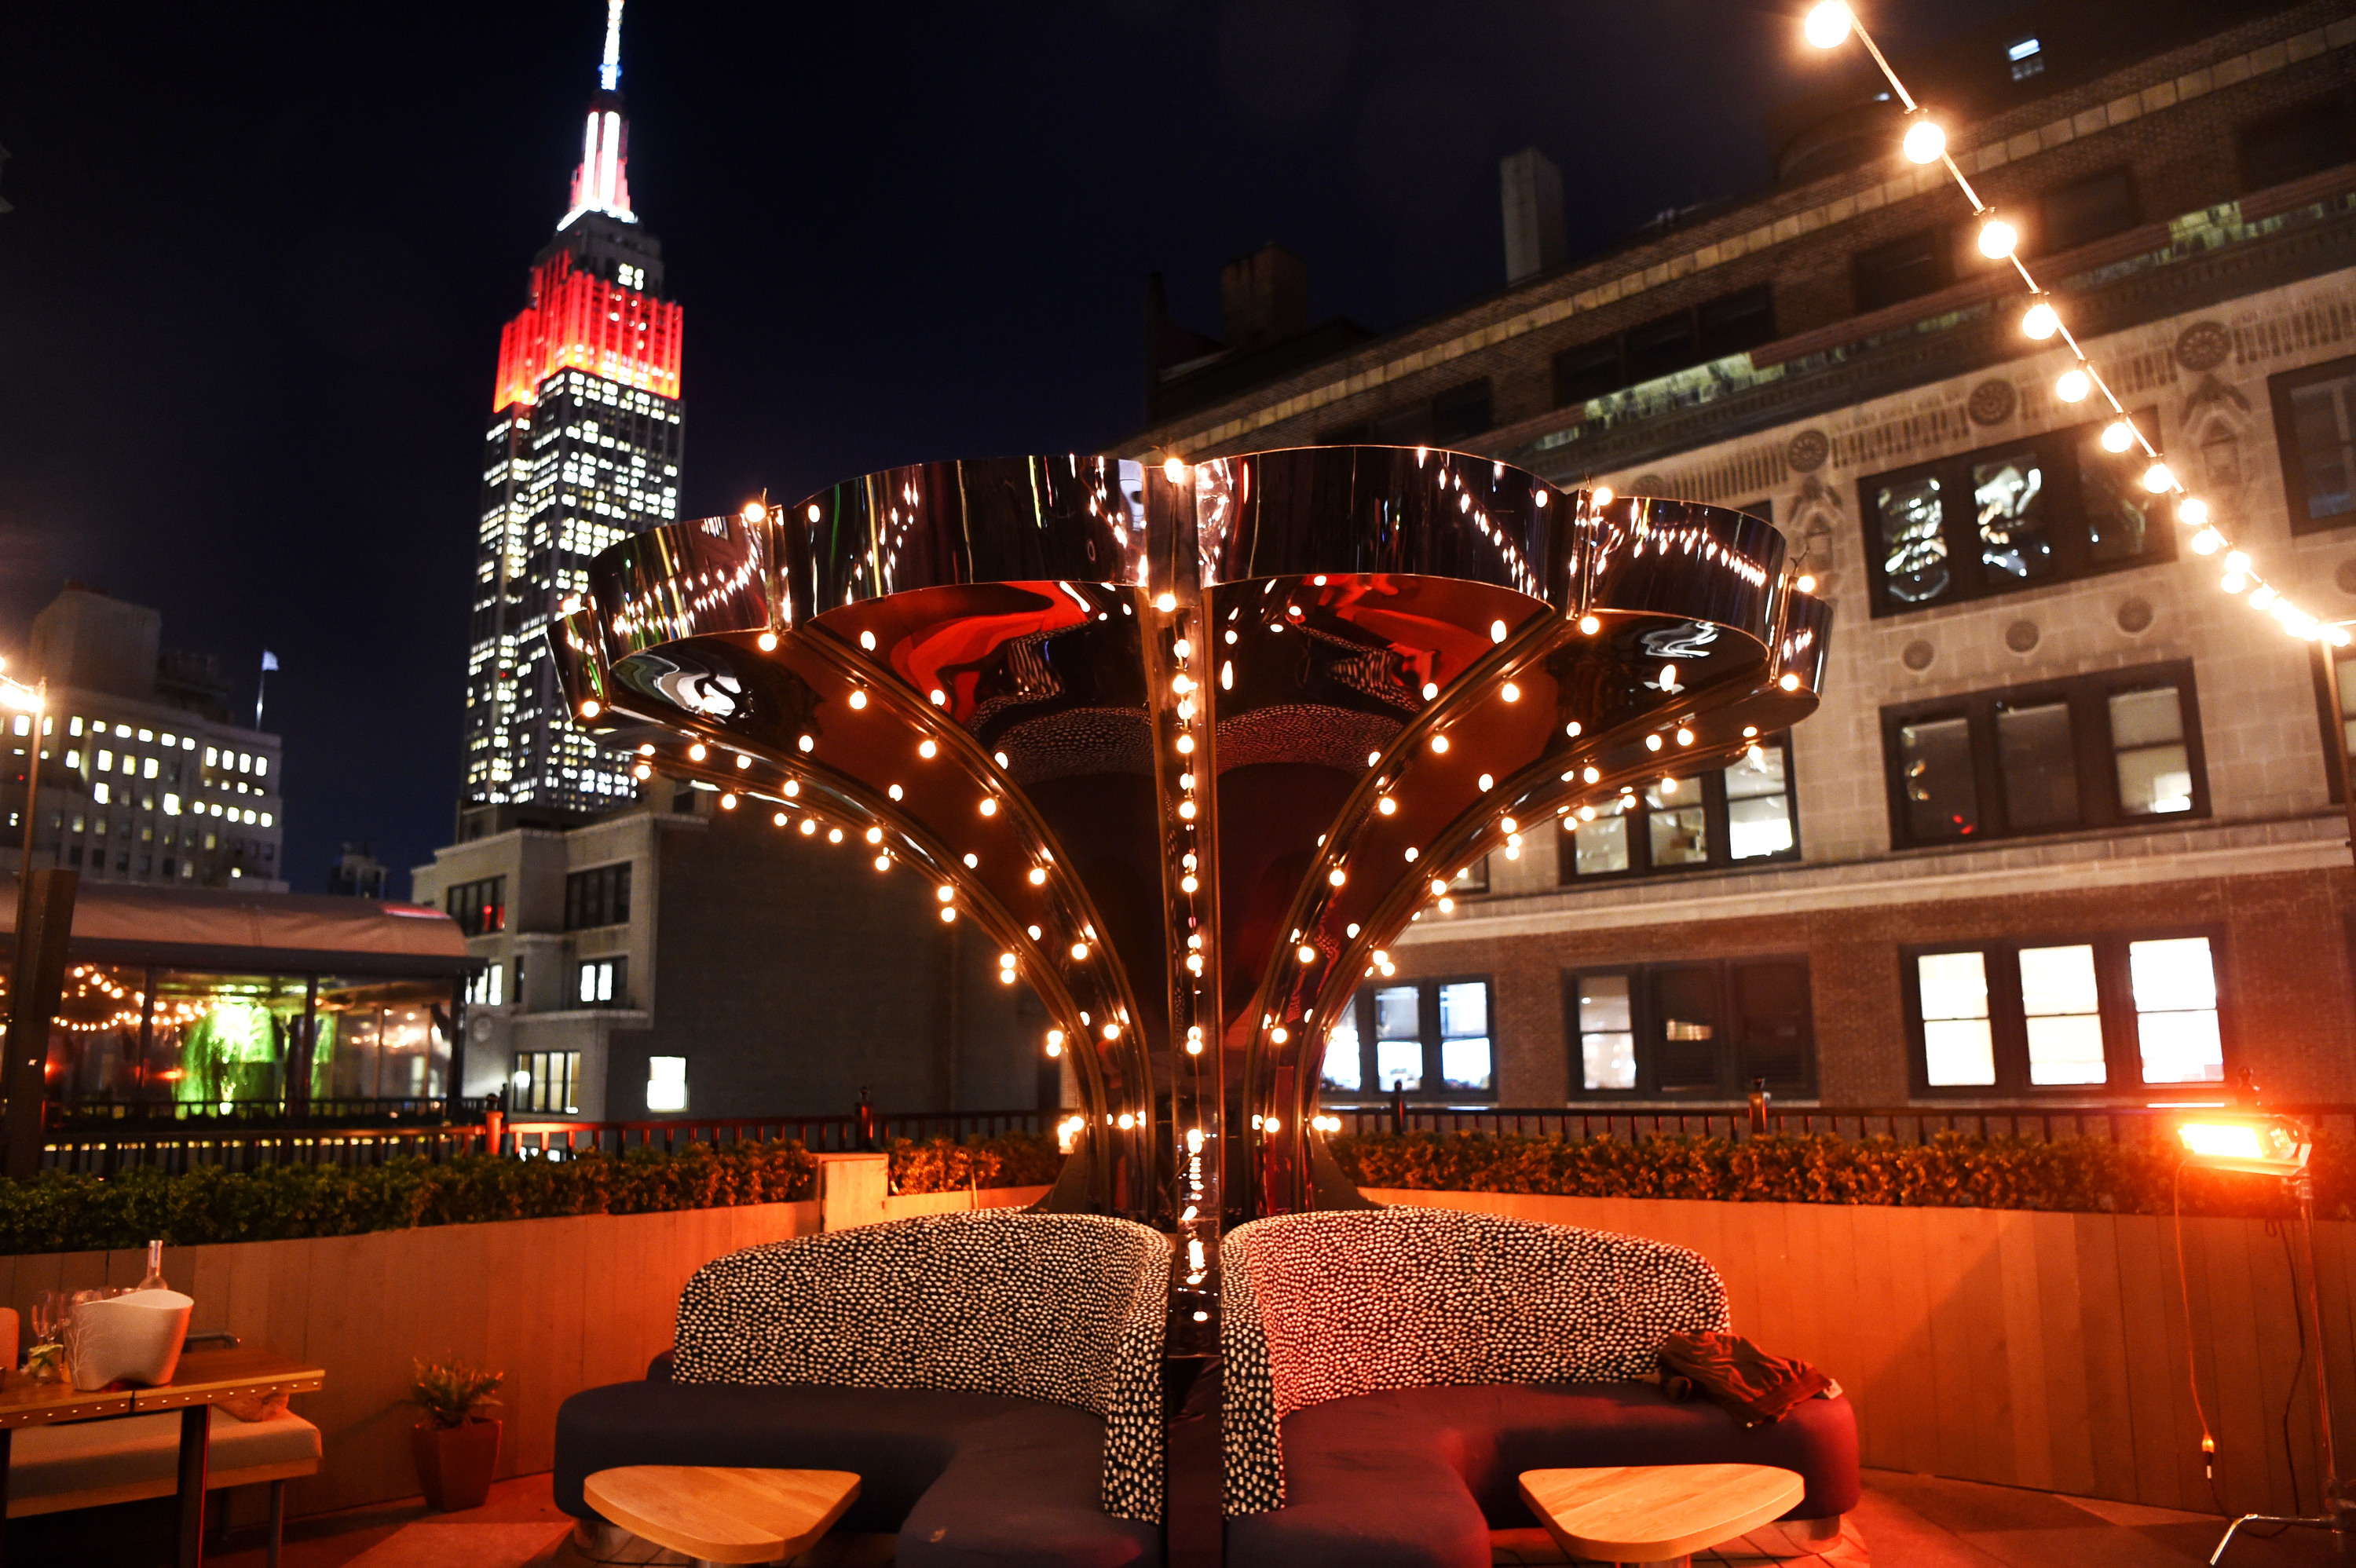 A Rooftop Bar With A Minigolf Course Just Opened In Midtown